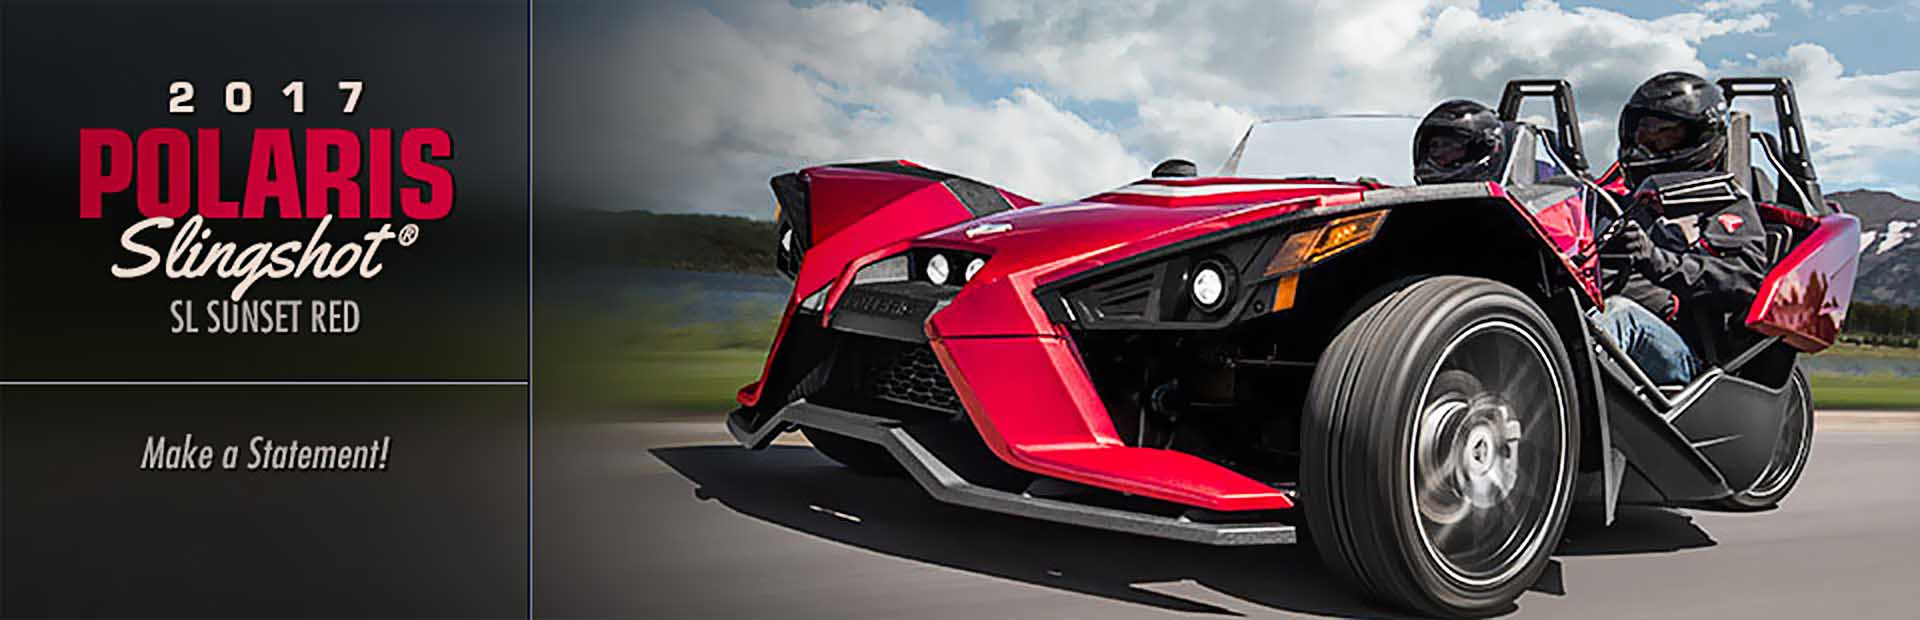 2017 Polaris Slingshot® SL Sunset Red: Click here to view the model.